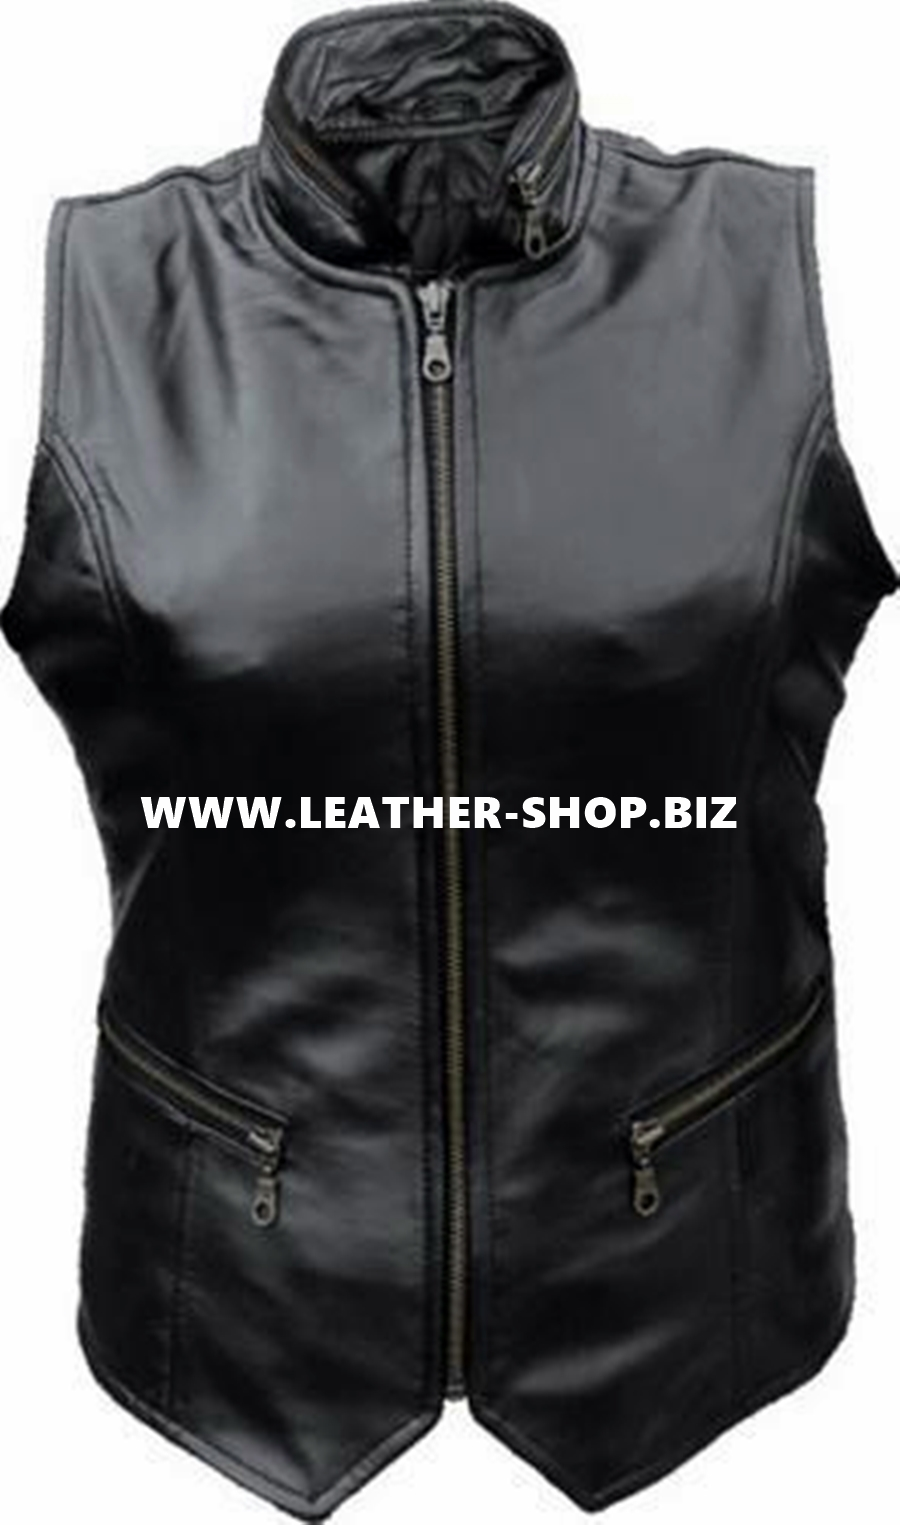 womens-leather-vest-custom-made-style-wlv1300-www.leather-shop.biz-front-pic.jpg